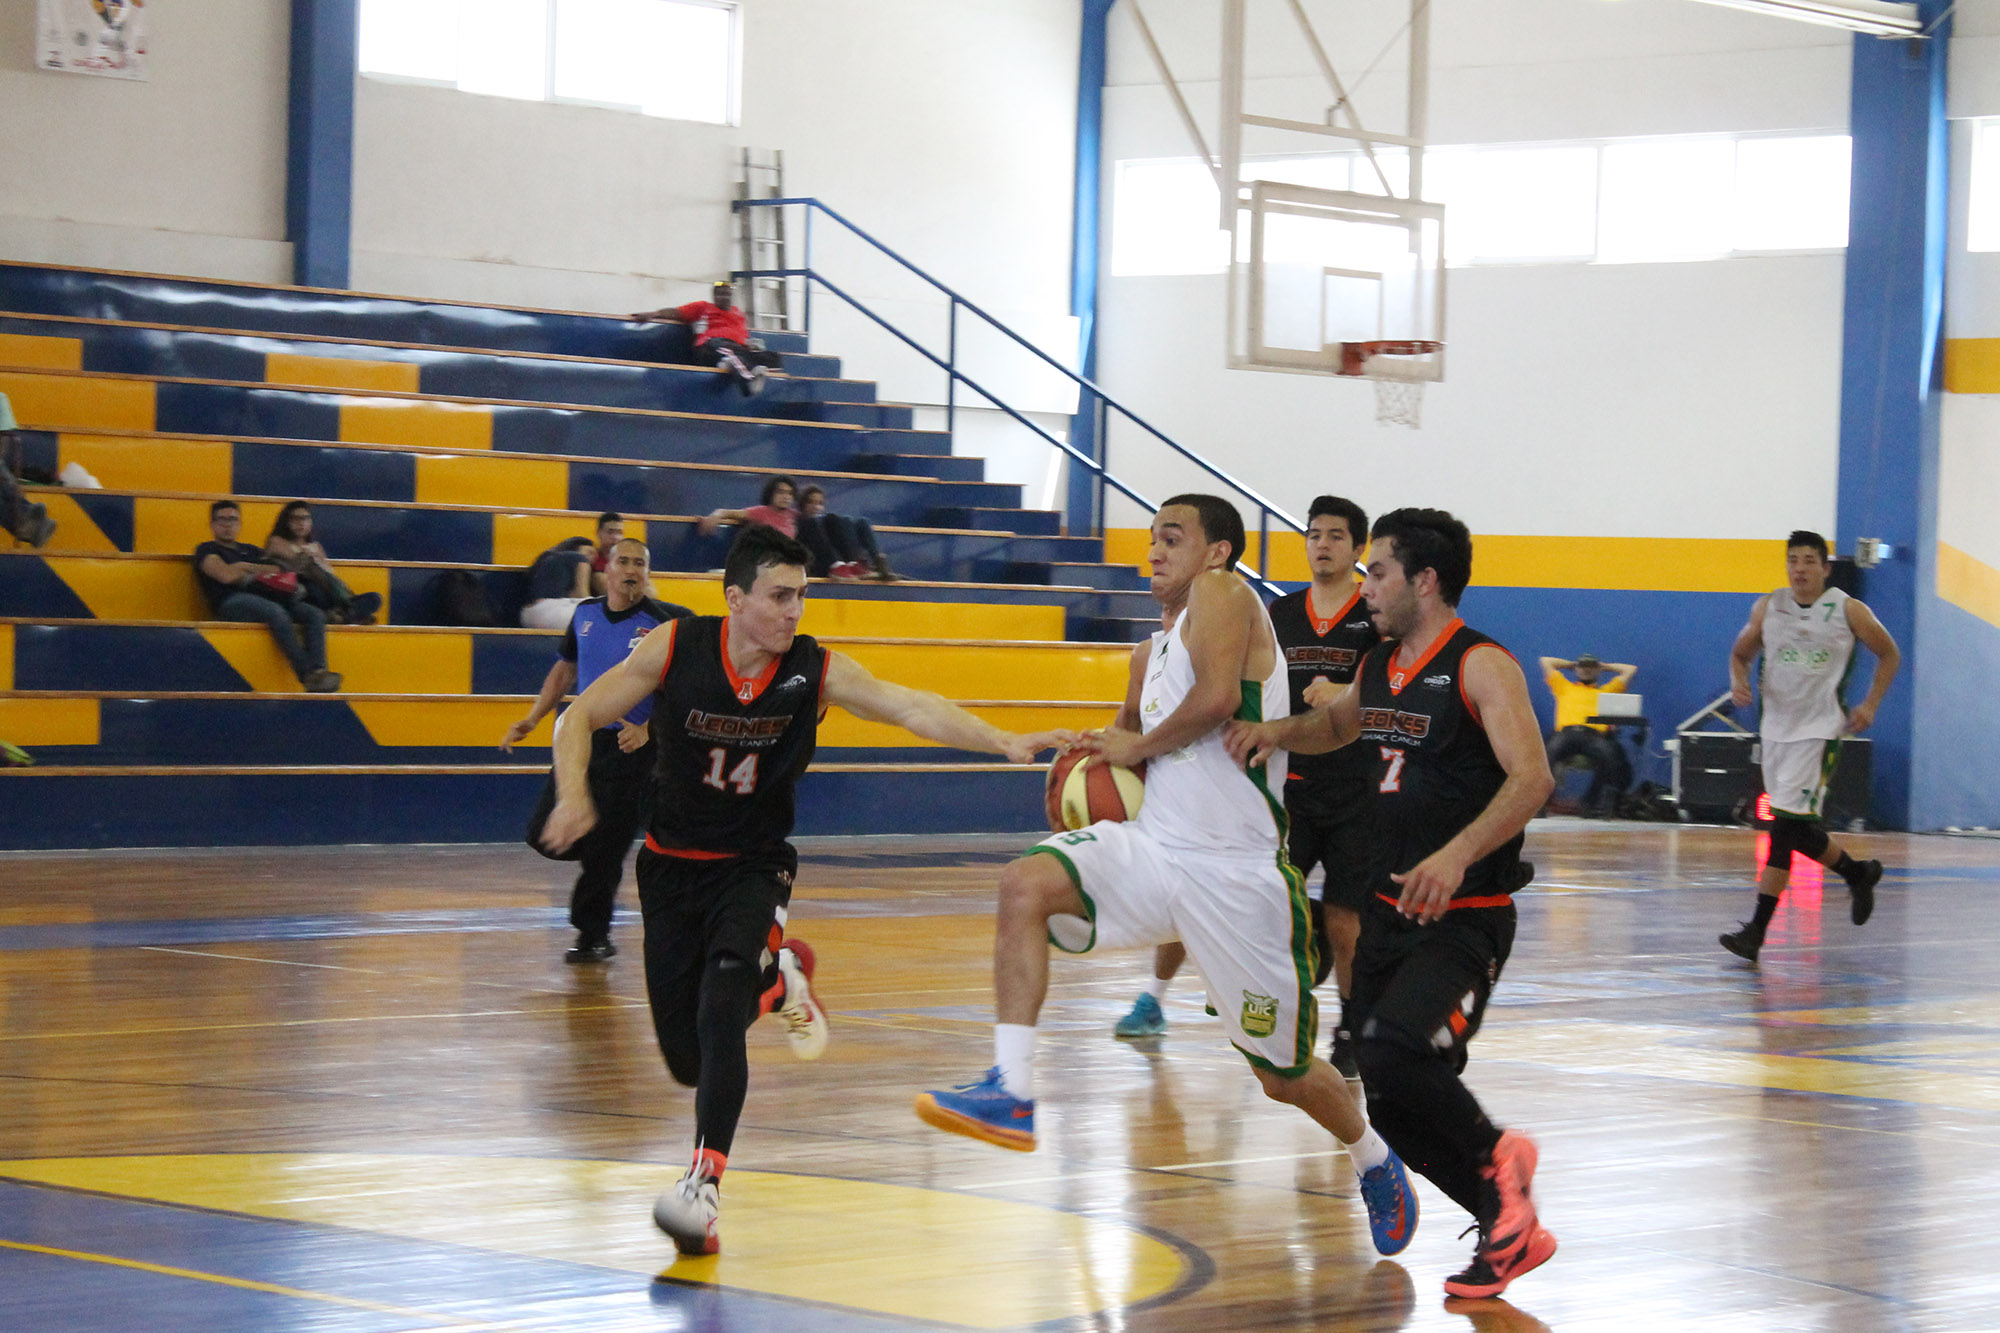 Universiada nacional 2015-basquetbol  ITESM Guadalajara vs Universidad Marista de Merida-foto Norma Martinez 2